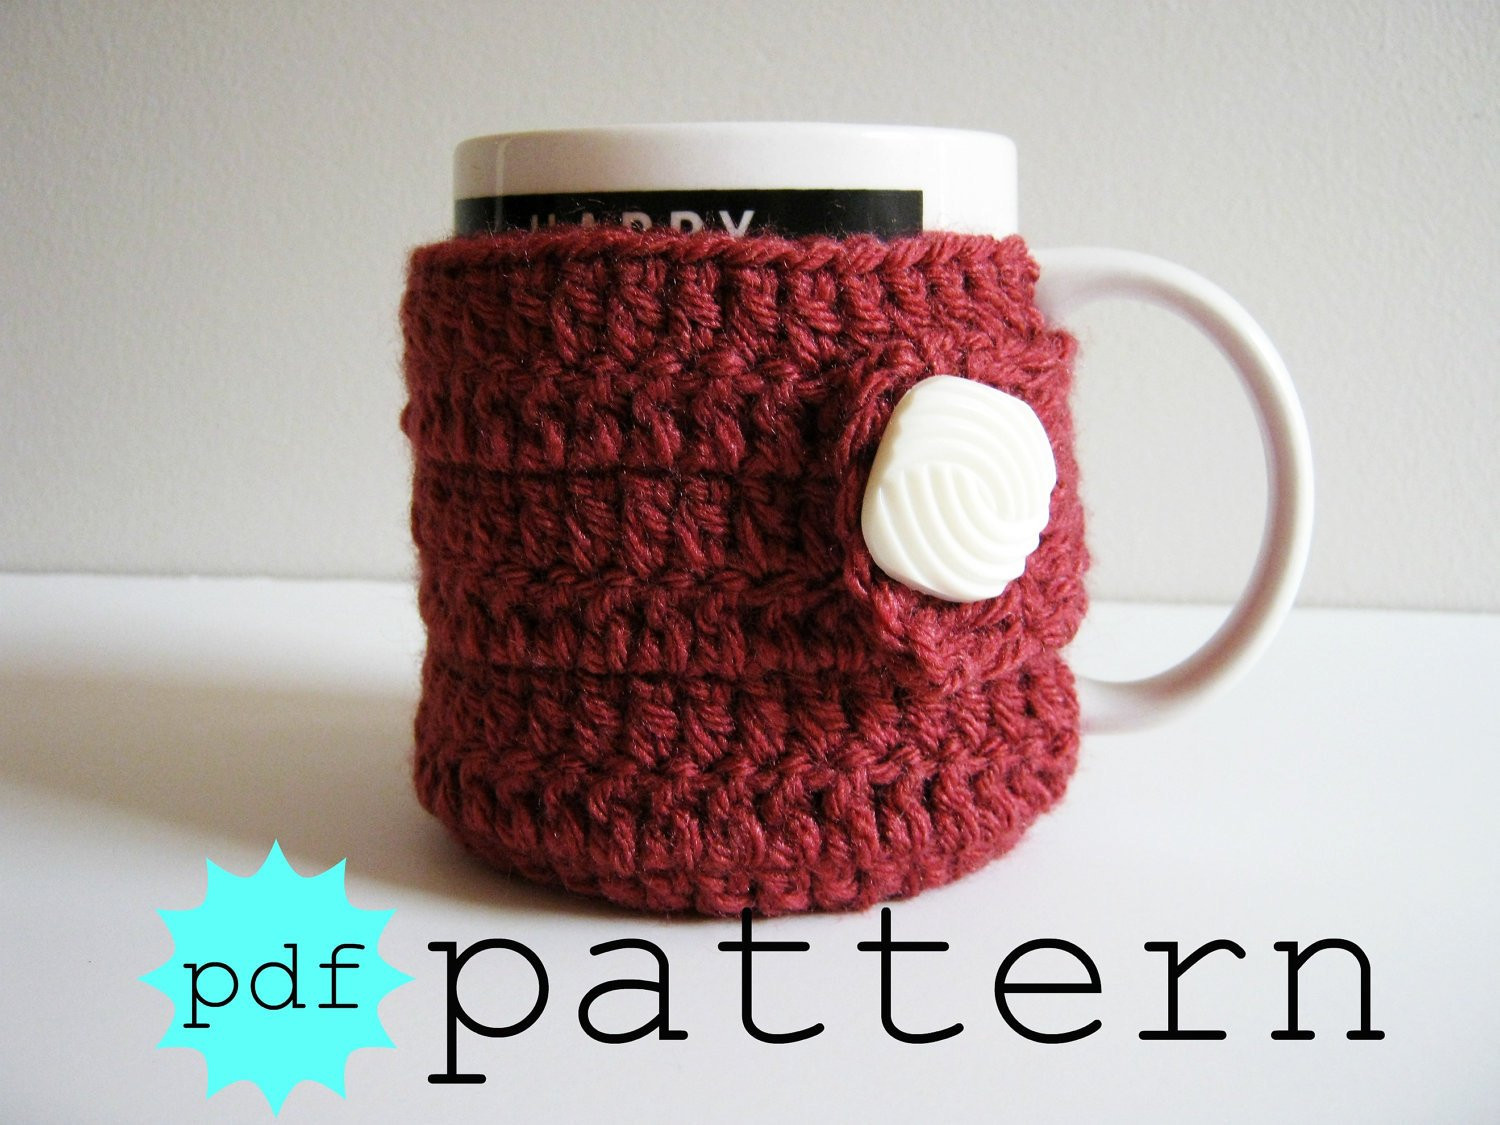 Crochet Coffee Cup Cozy Luxury Pdf Crochet Pattern Coffee Mug Cozy with button by Of Crochet Coffee Cup Cozy Fresh 20 Cool Crochet Coffee Cozy Ideas & Tutorials Hative